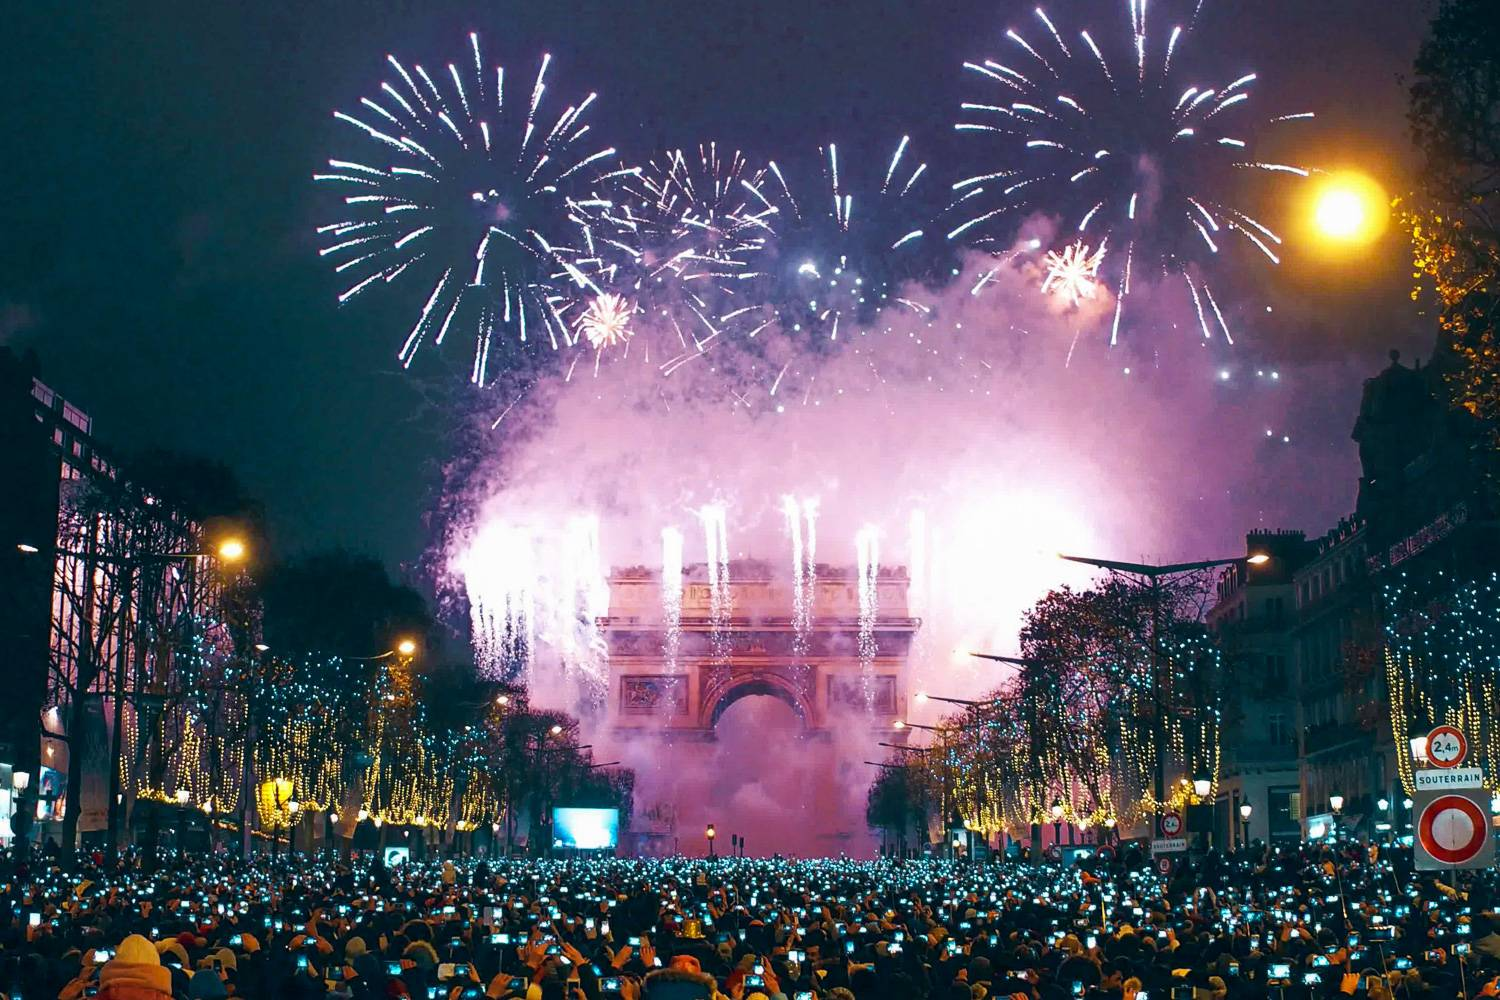 Celebrating New Year's Eve in Paris